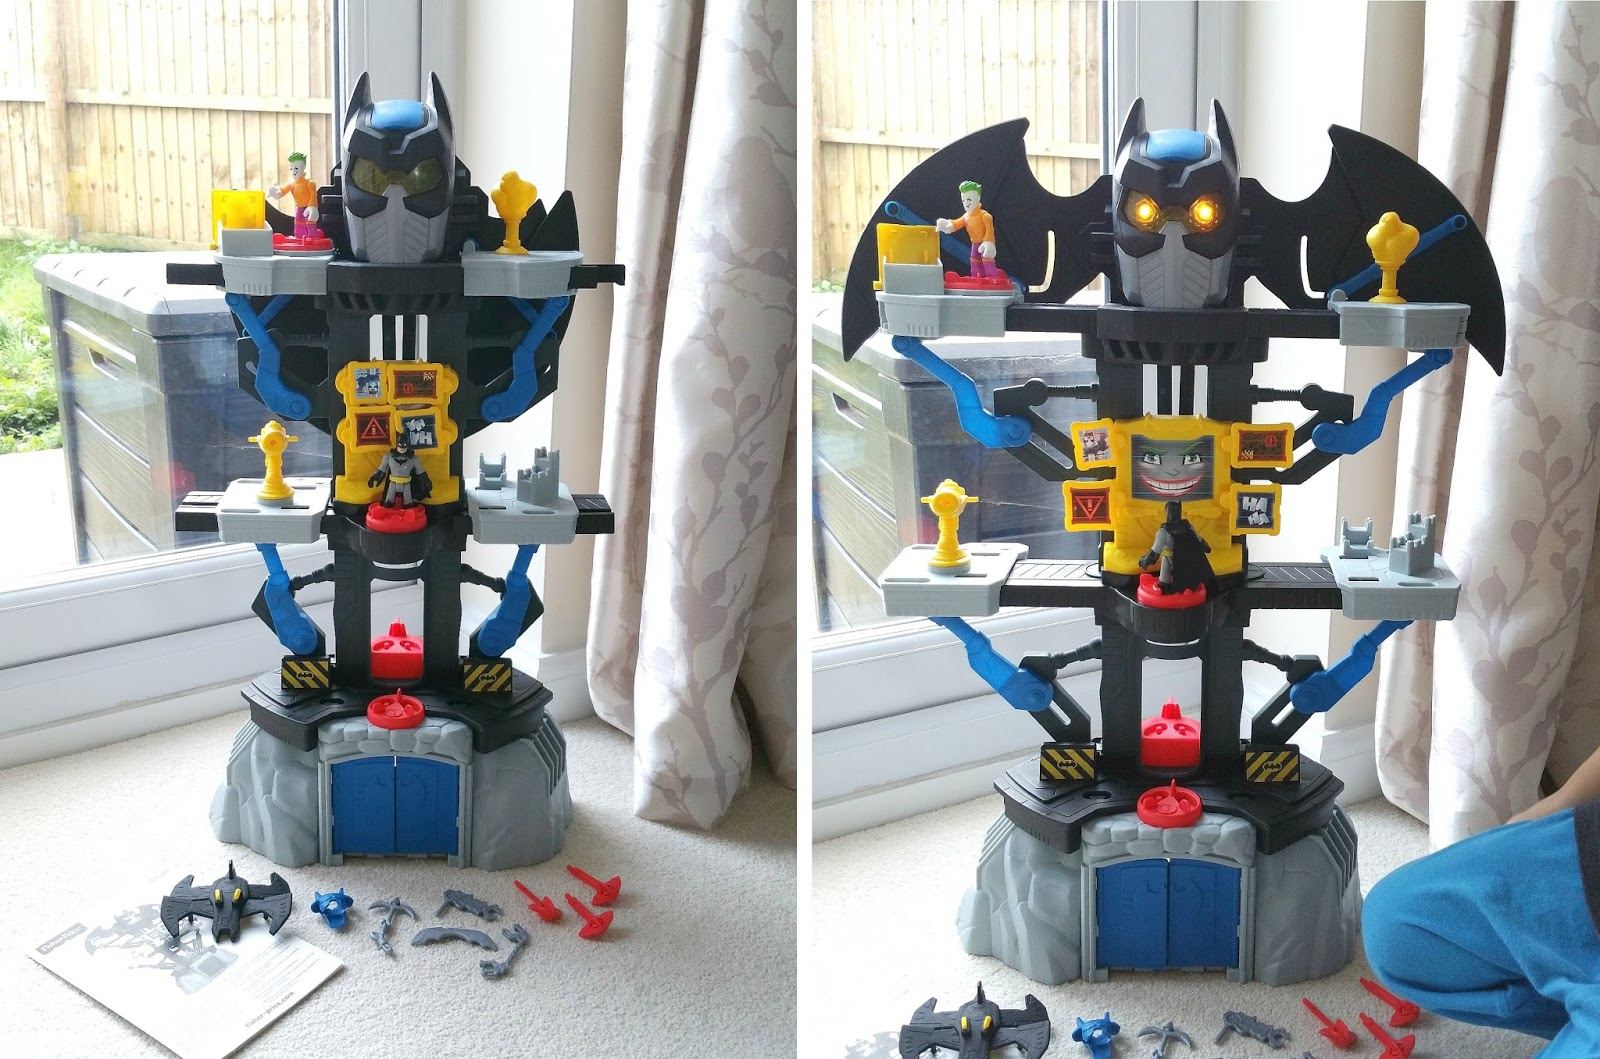 Christmas Batman gift, imaginext Transforming Batcave, Batman toy